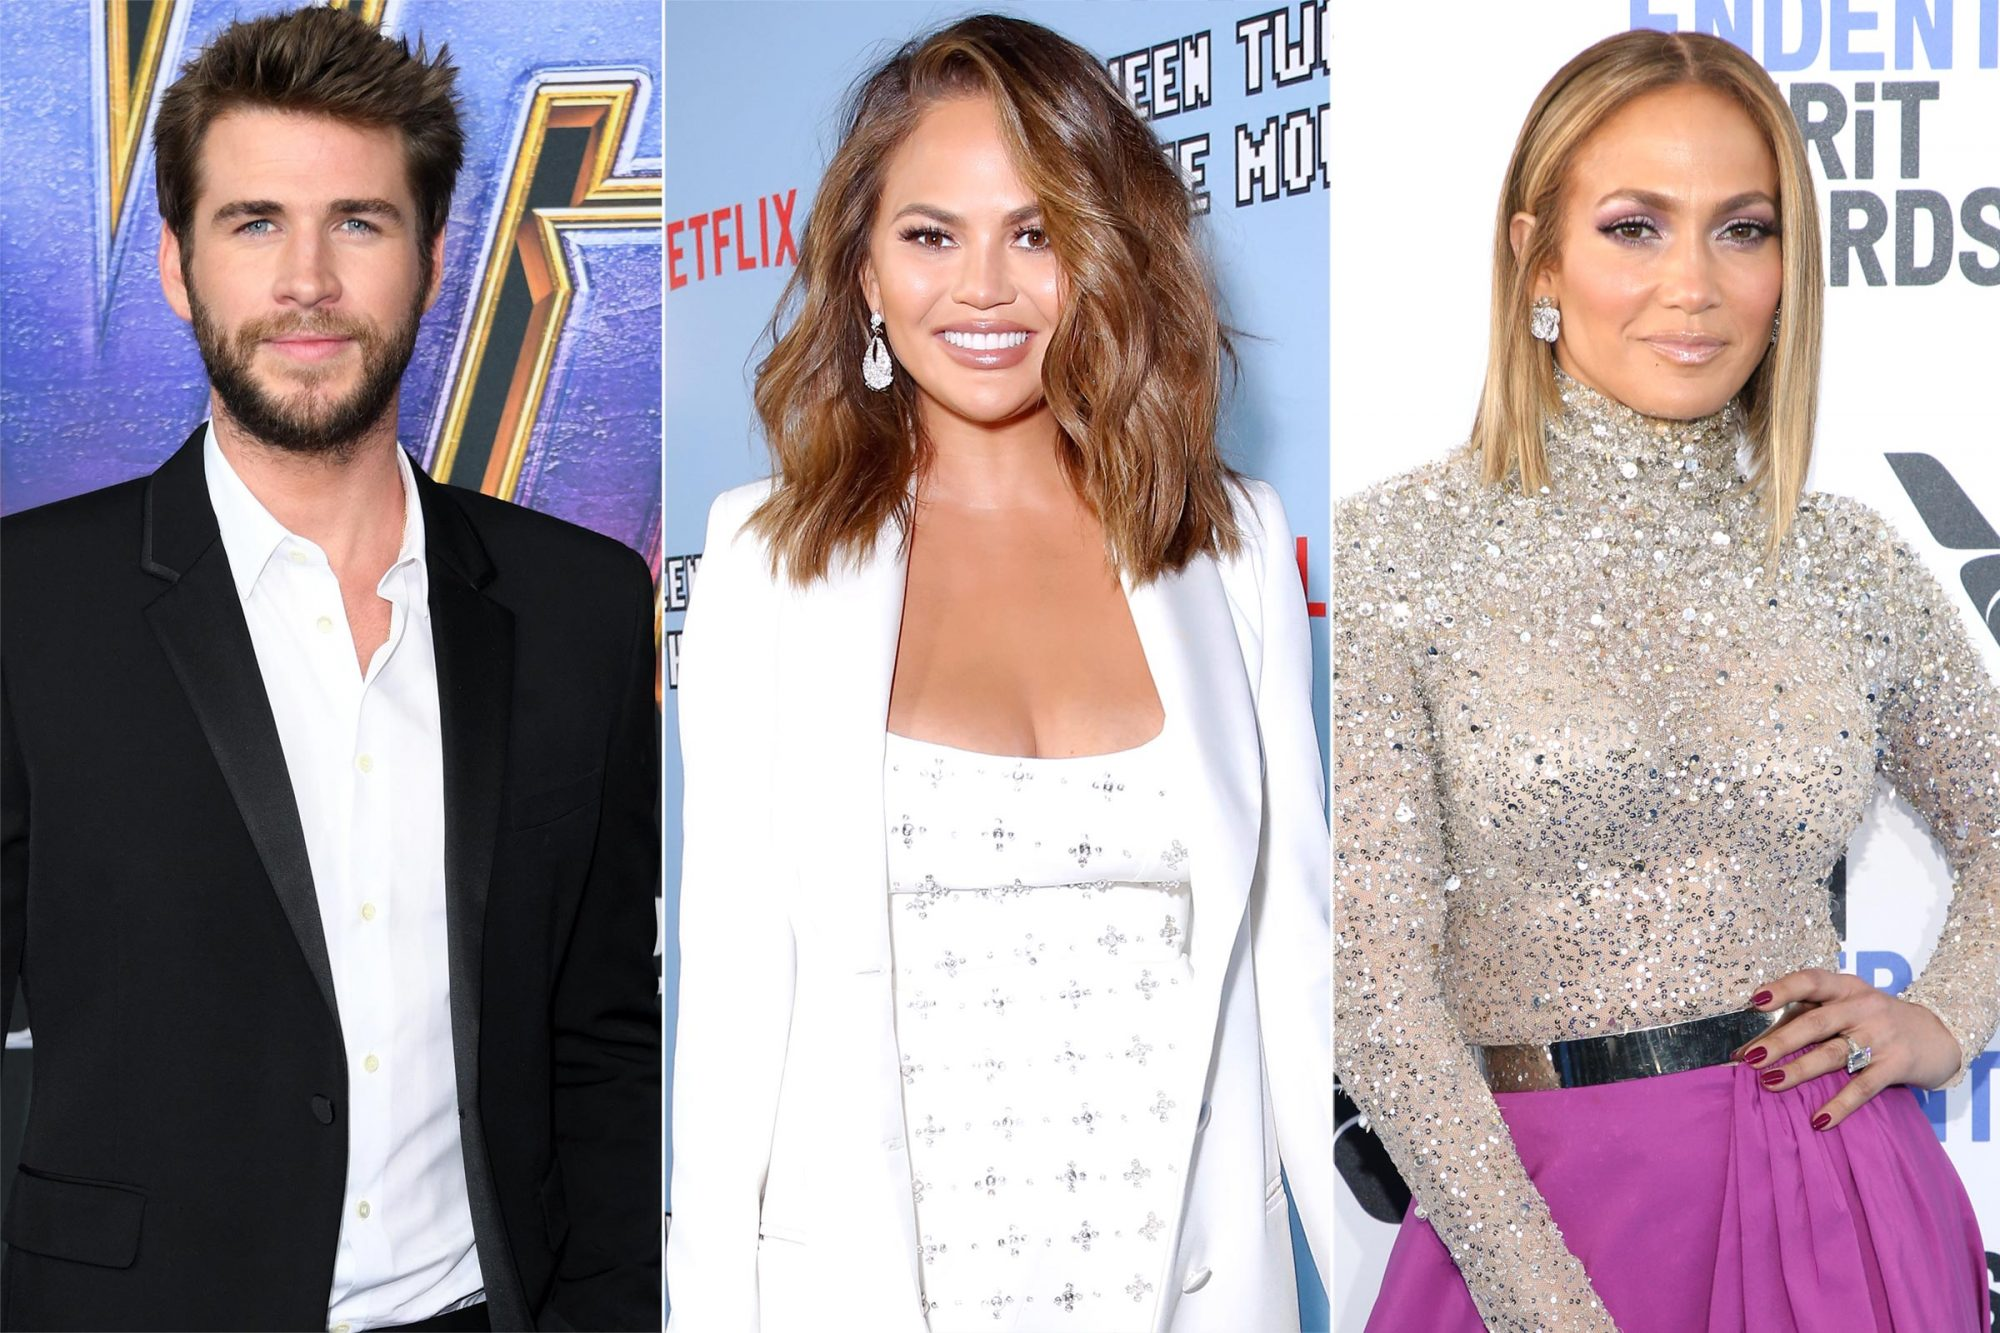 See J. Lo, Chrissy Teigen, Liam Hemsworth in first look photos from their Quibi shows